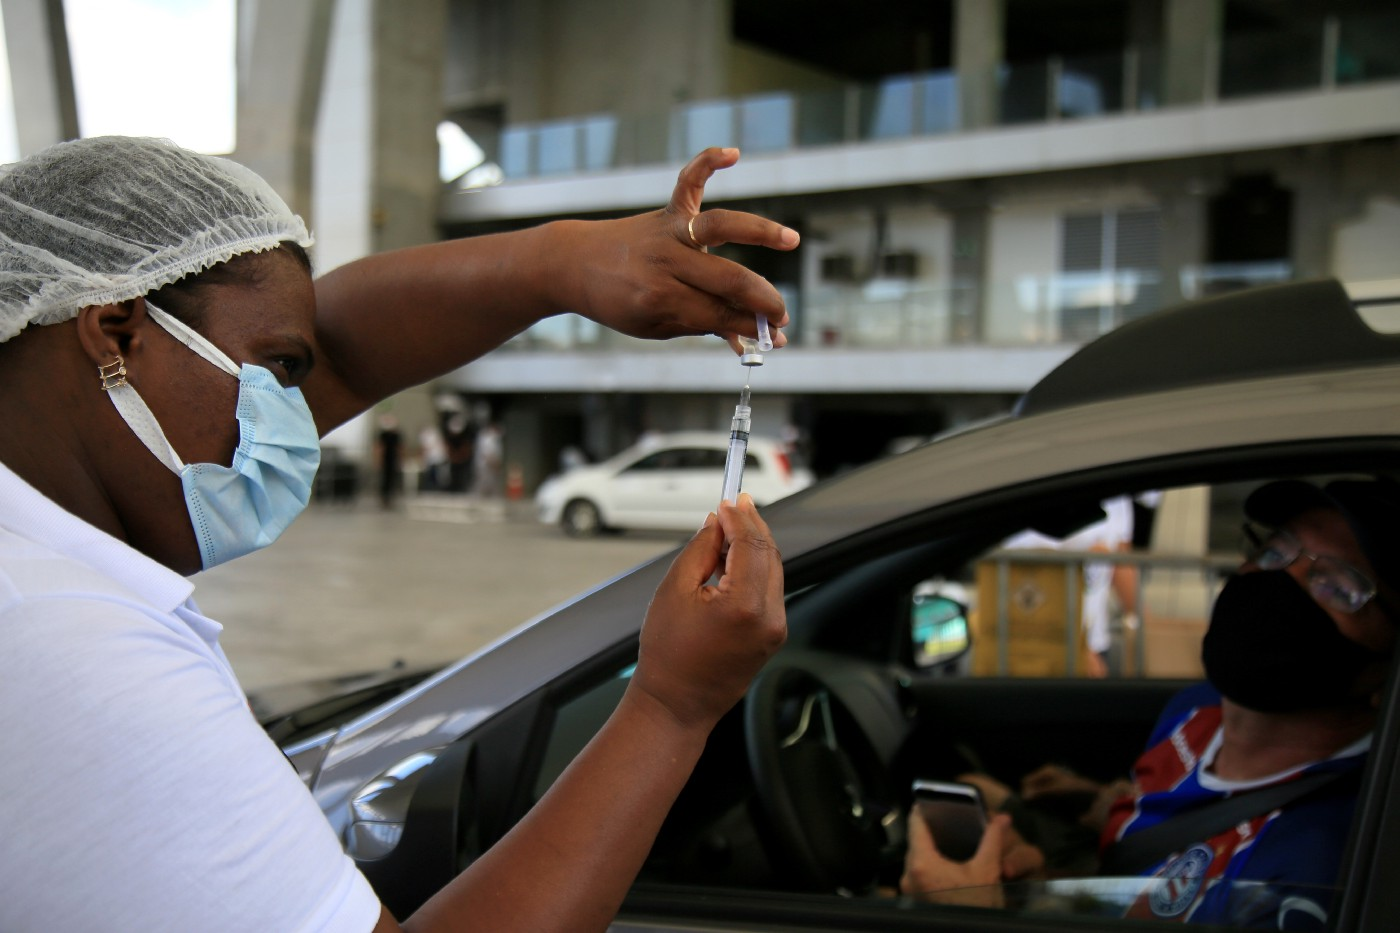 A health worker in a surgical mask prepares a syringe of Covid-19 vaccine. The patient waits in their car with the window rolled down. State of Bahía, Brazil. February 2021.